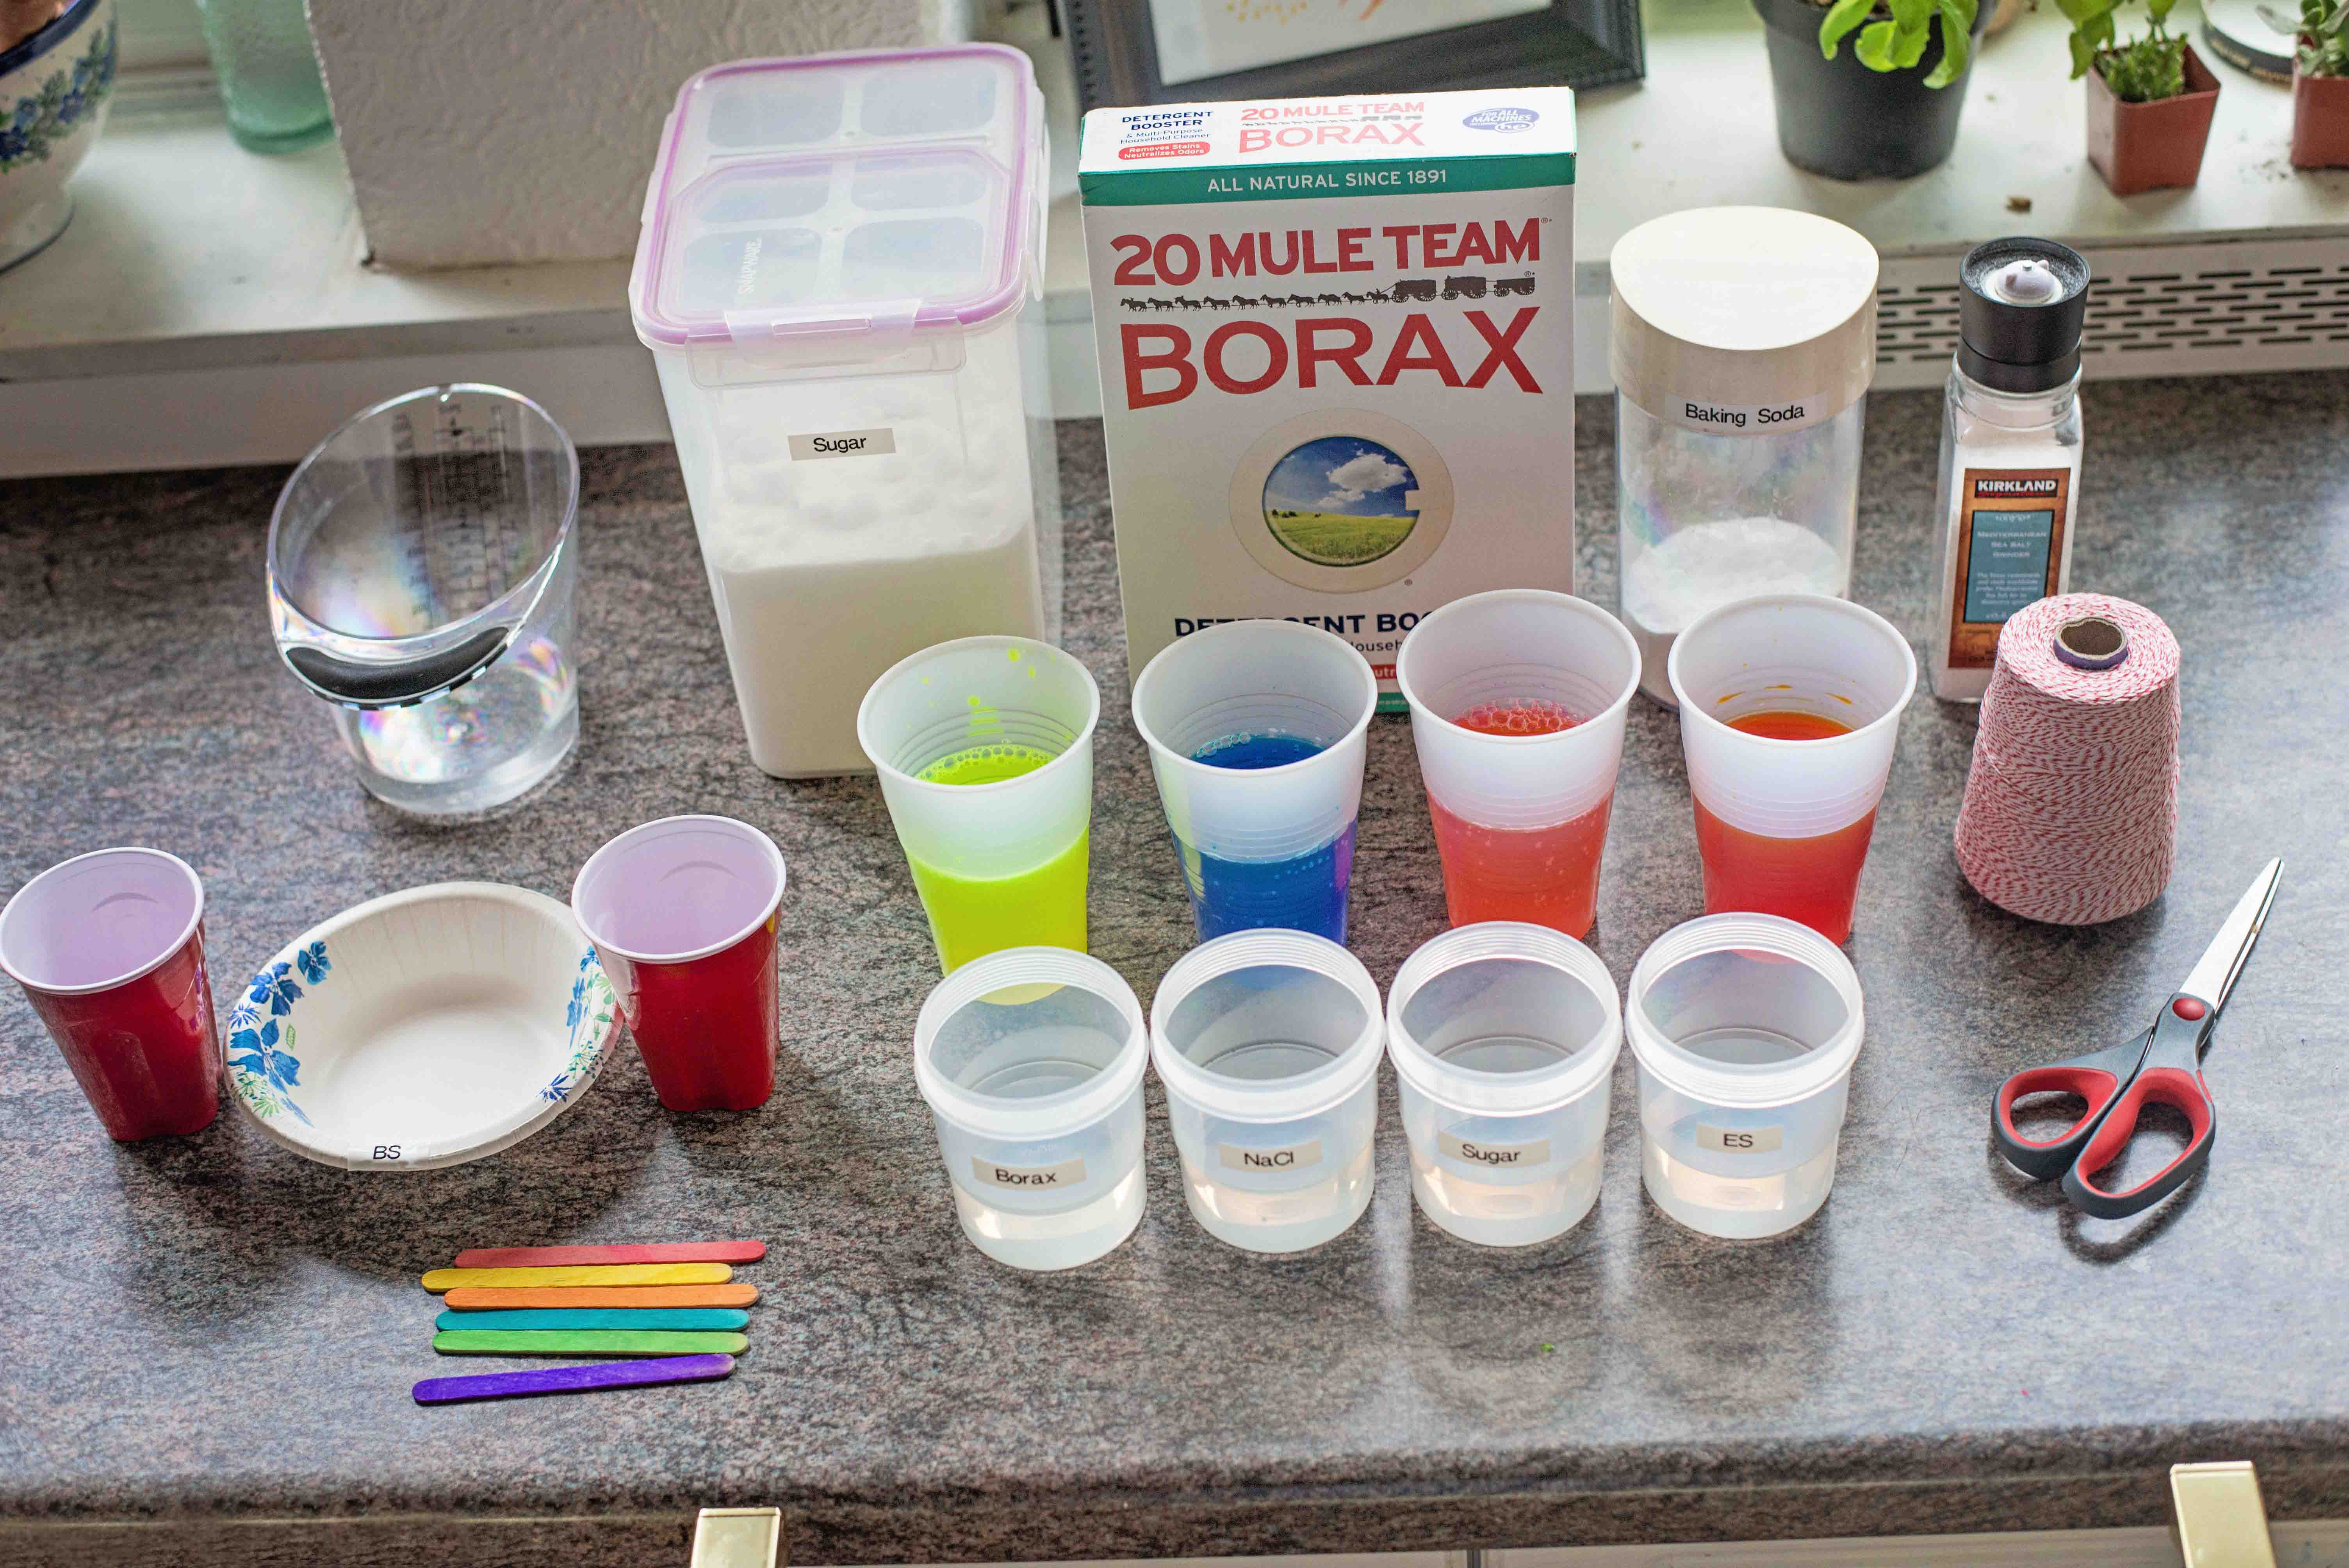 How to grow GLOWING crystals, and what to do with them once you're done! A kid's science experiment by Babes in Deutschland